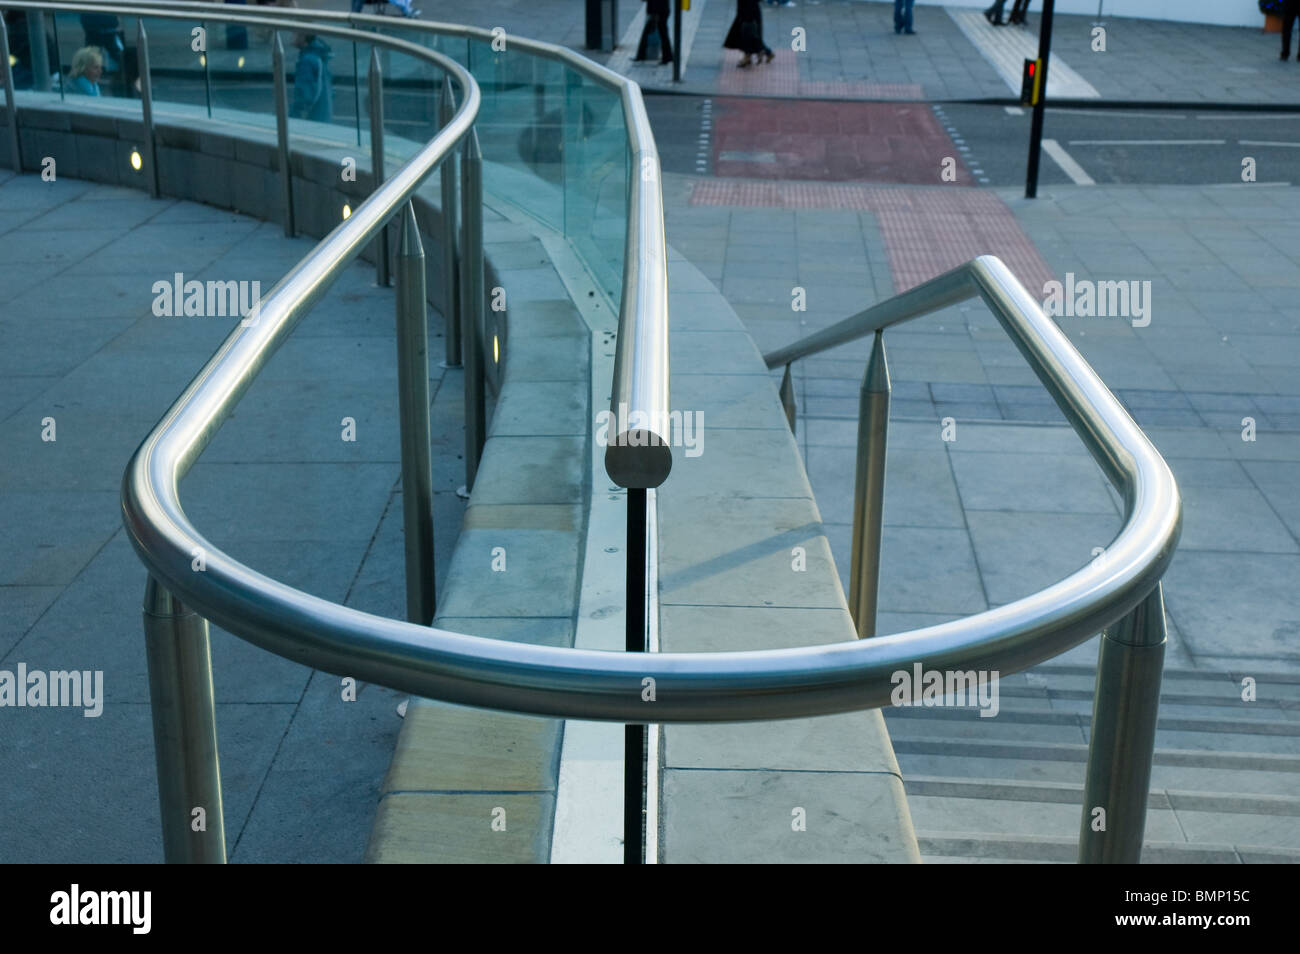 Safety handrails outside the Arndale Centre, Manchester, England, UK - Stock Image